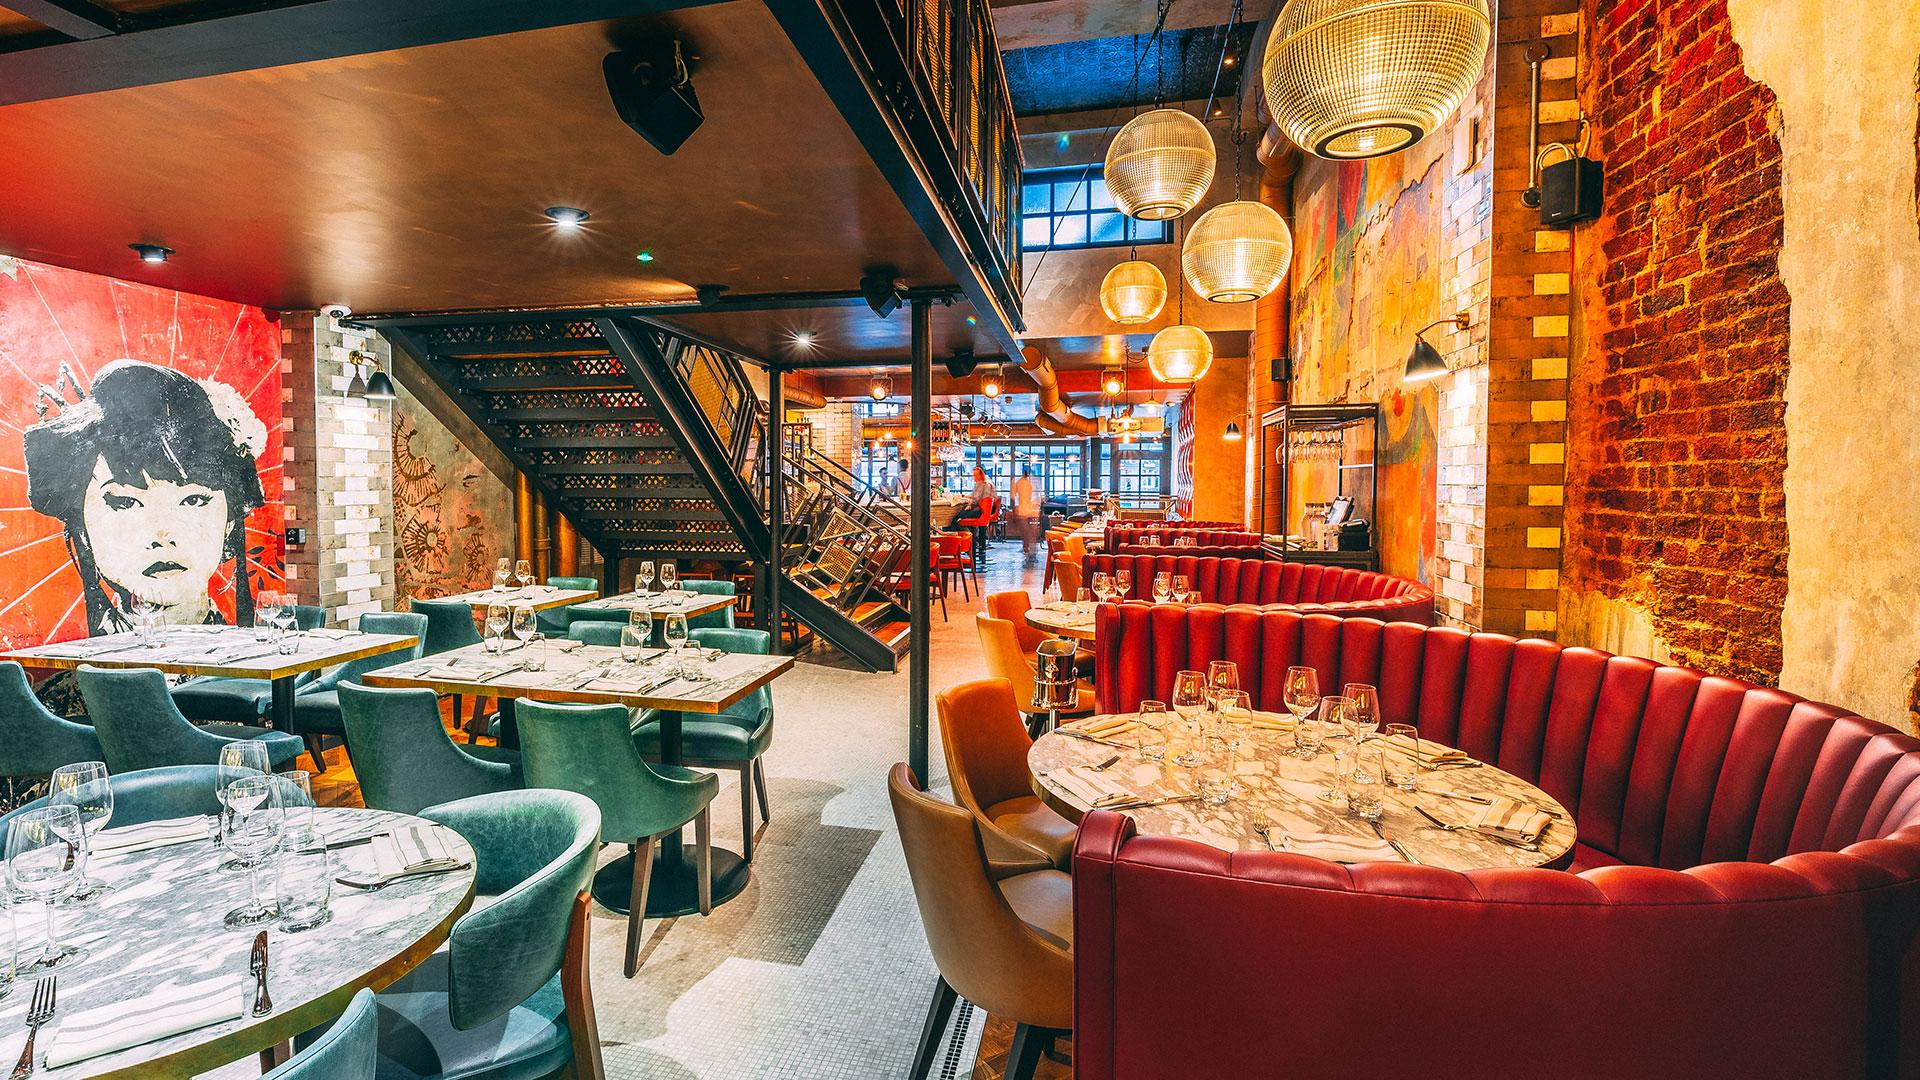 The dining room at Old Compton Brasserie in Soho